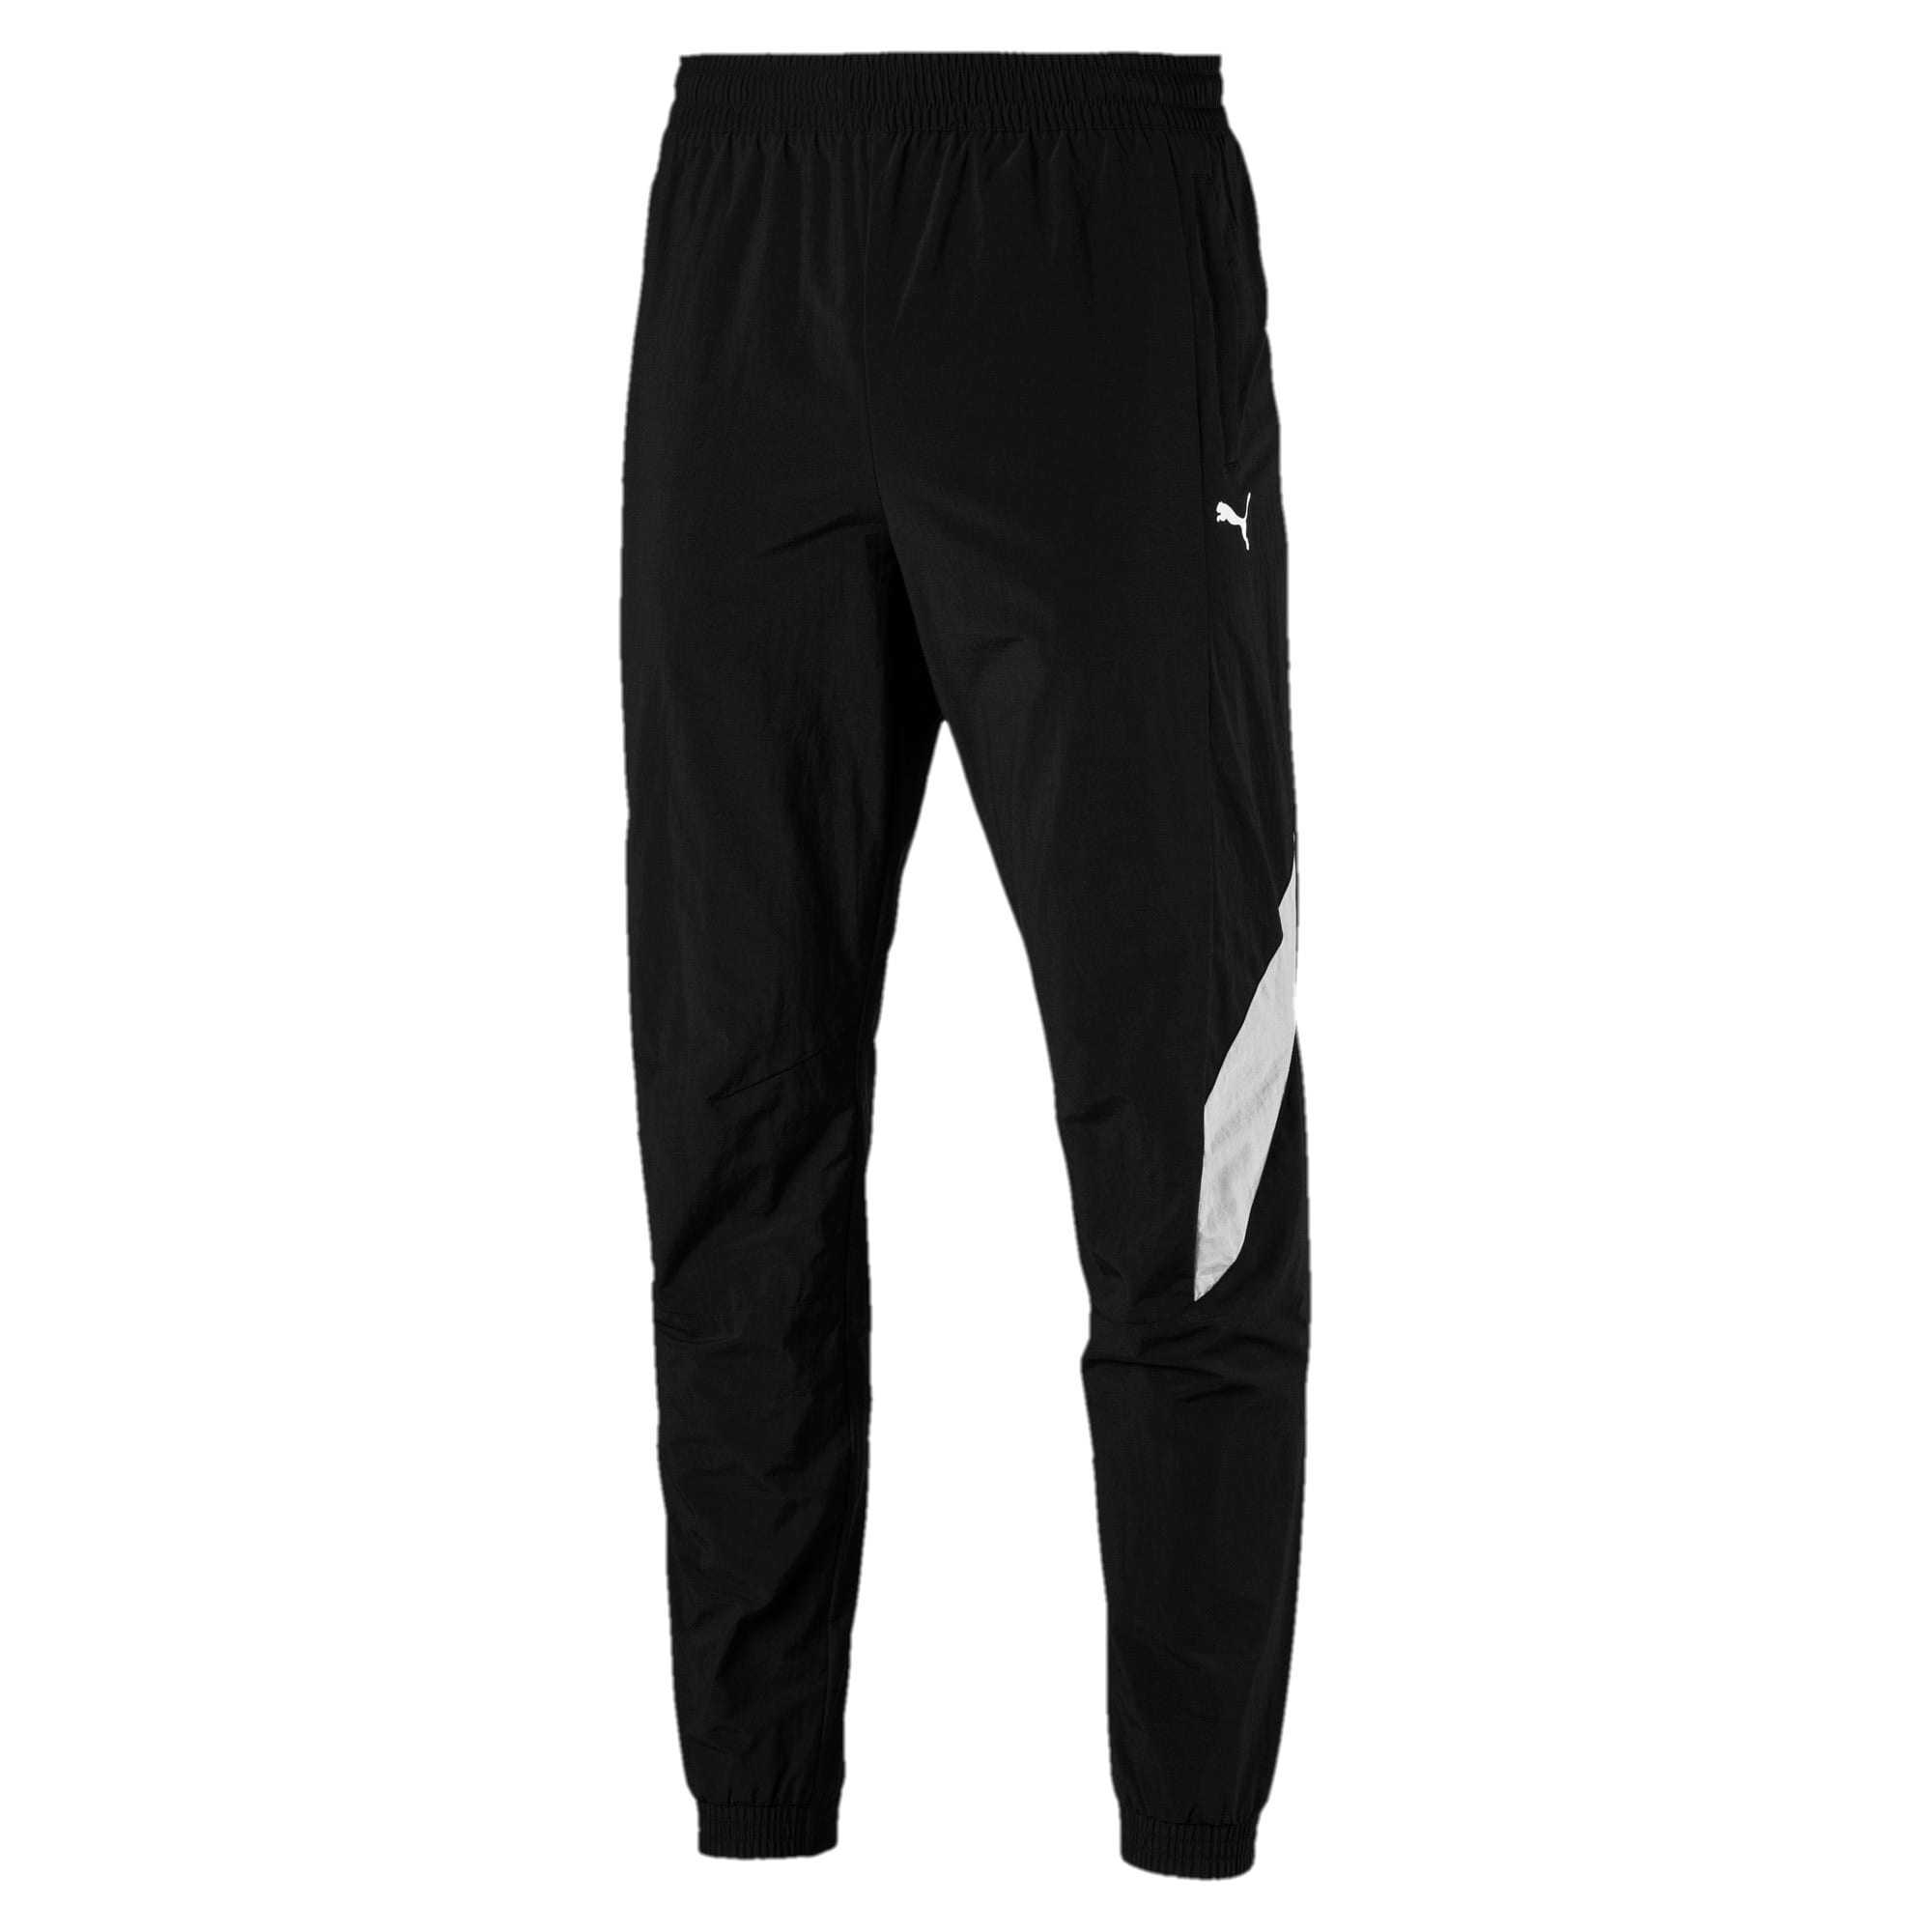 Thumbnail 1 of MERCEDES AMG PETRONAS Herren Gewebte Hose, Puma Black, medium